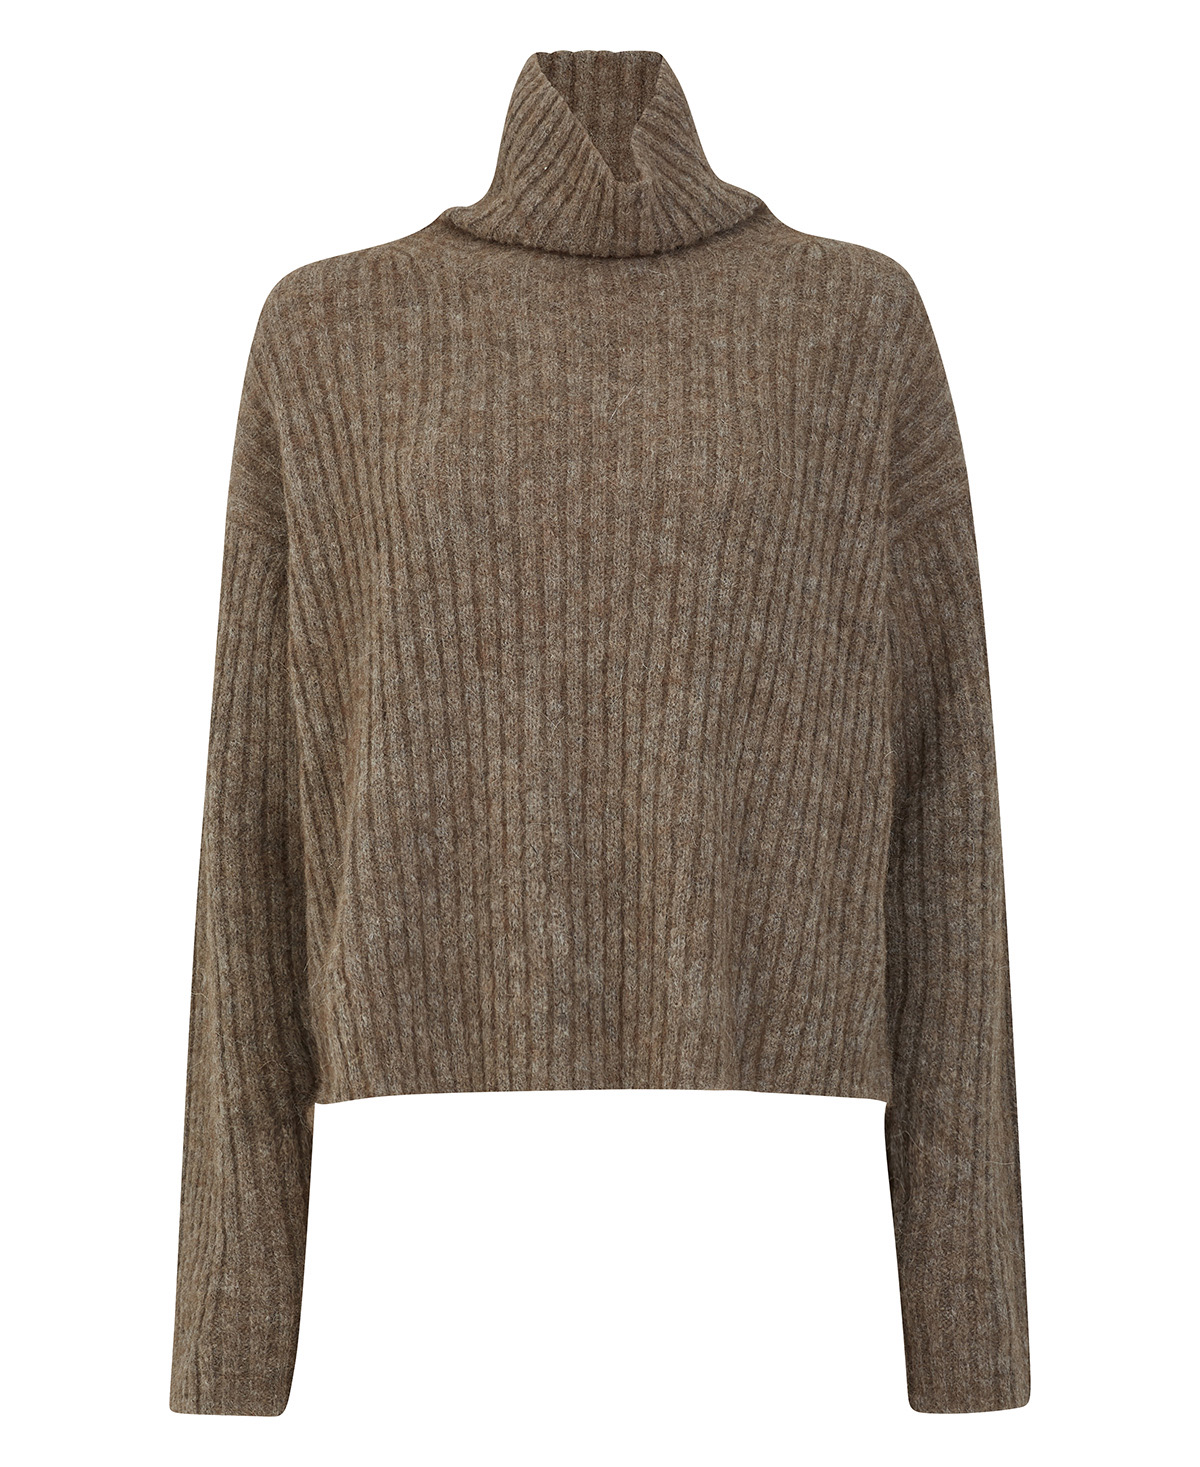 Carlisle rib sweater